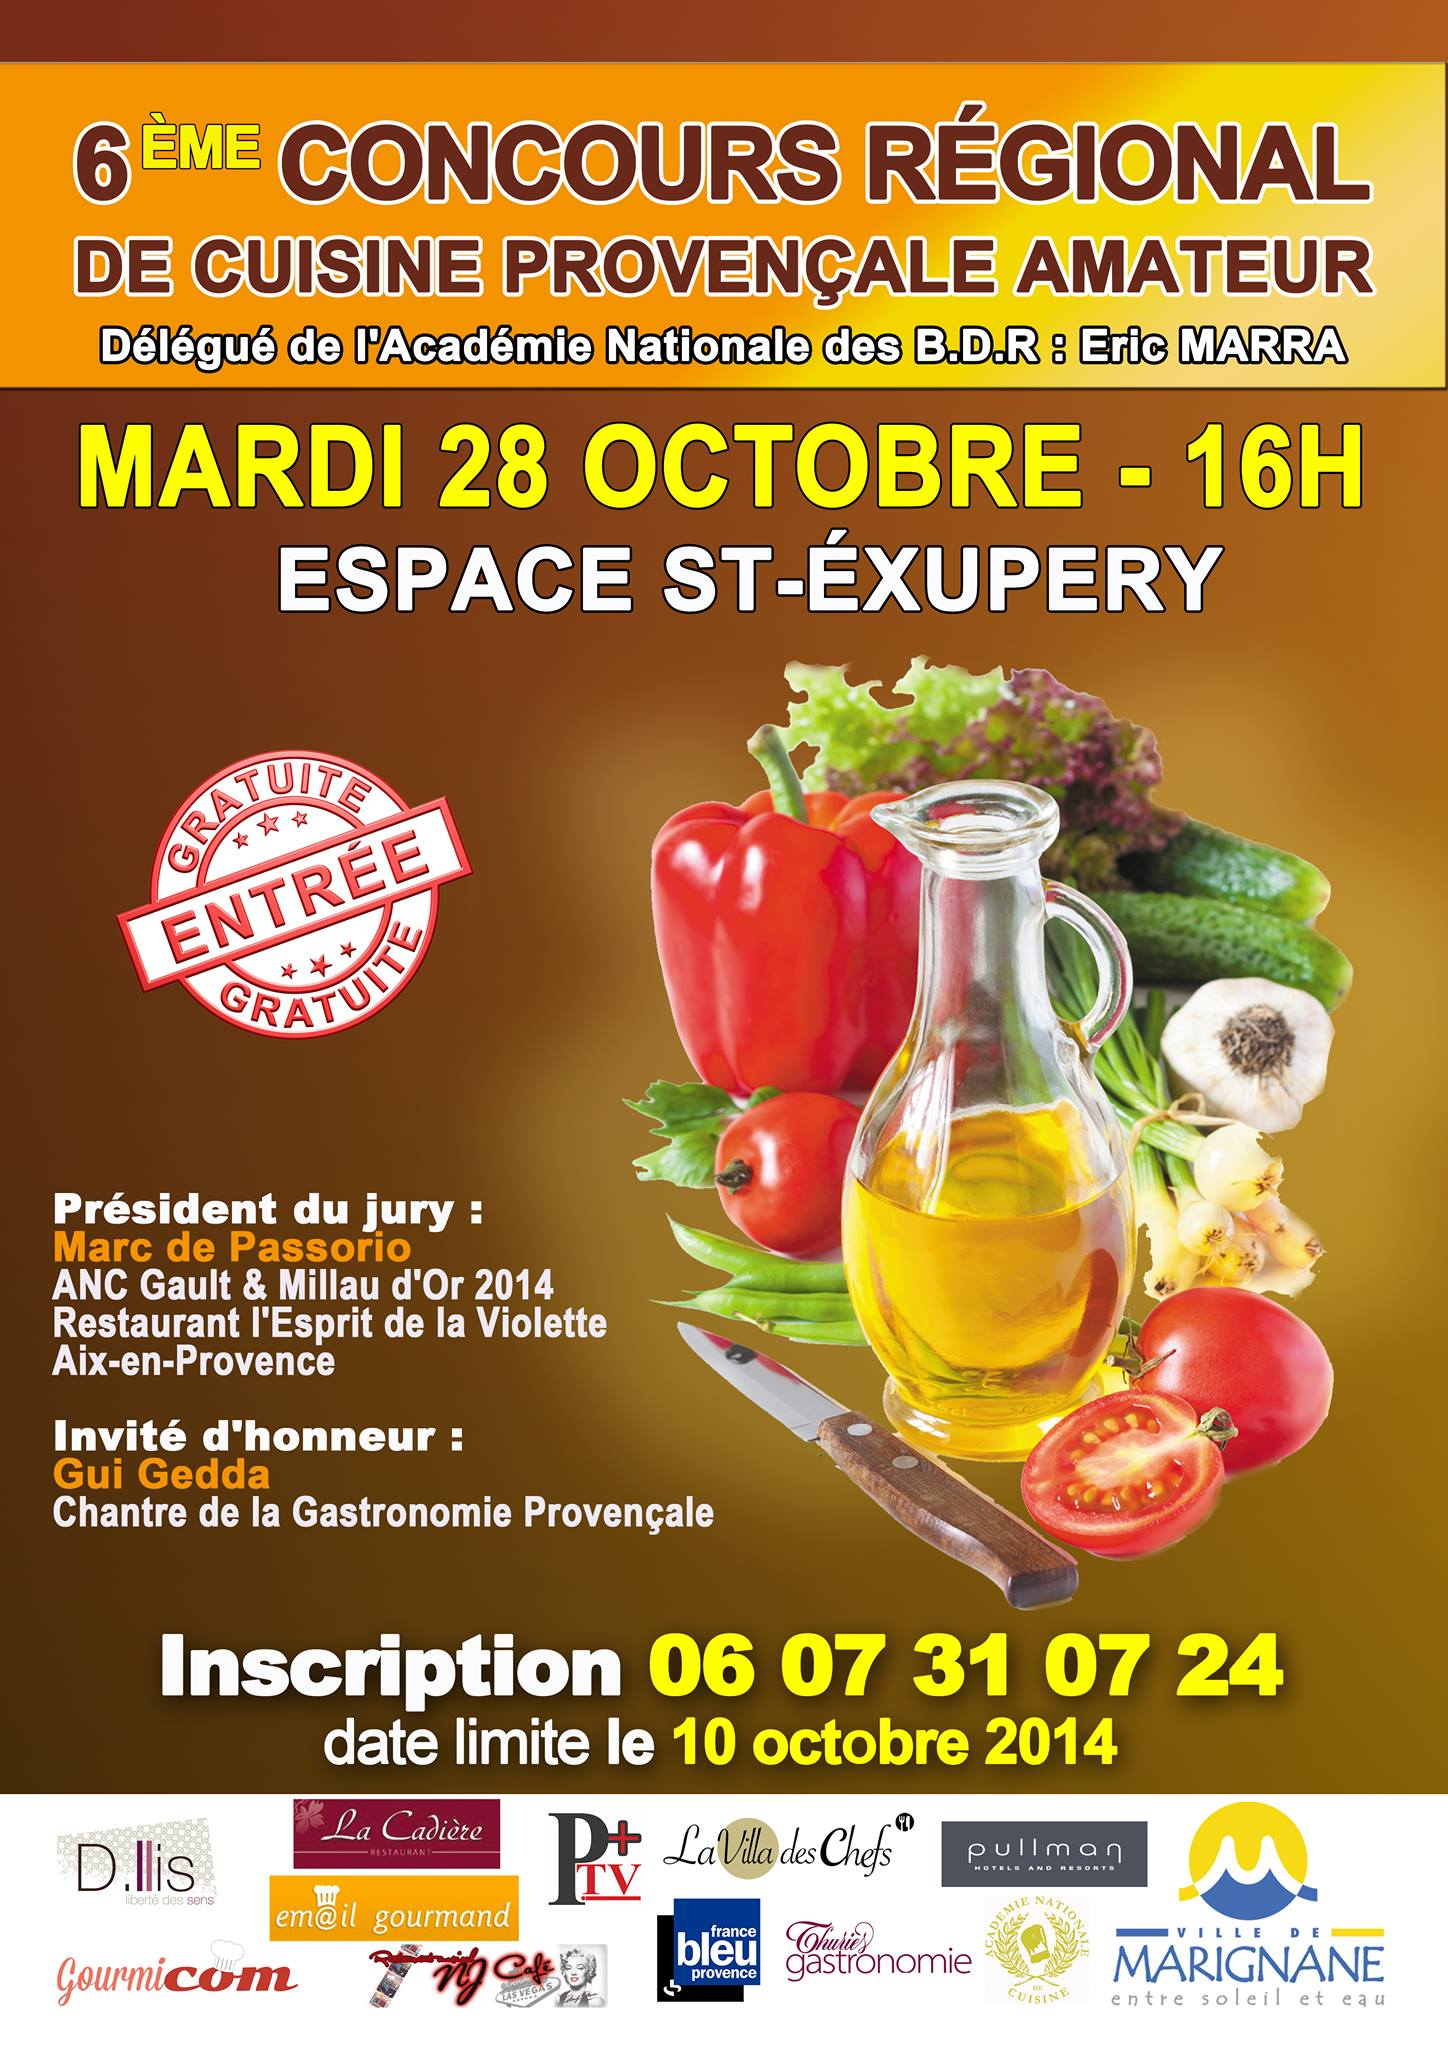 le concours r gional de cuisine proven ale amateur aura lieu le 28 octobre marignane gourmicom. Black Bedroom Furniture Sets. Home Design Ideas